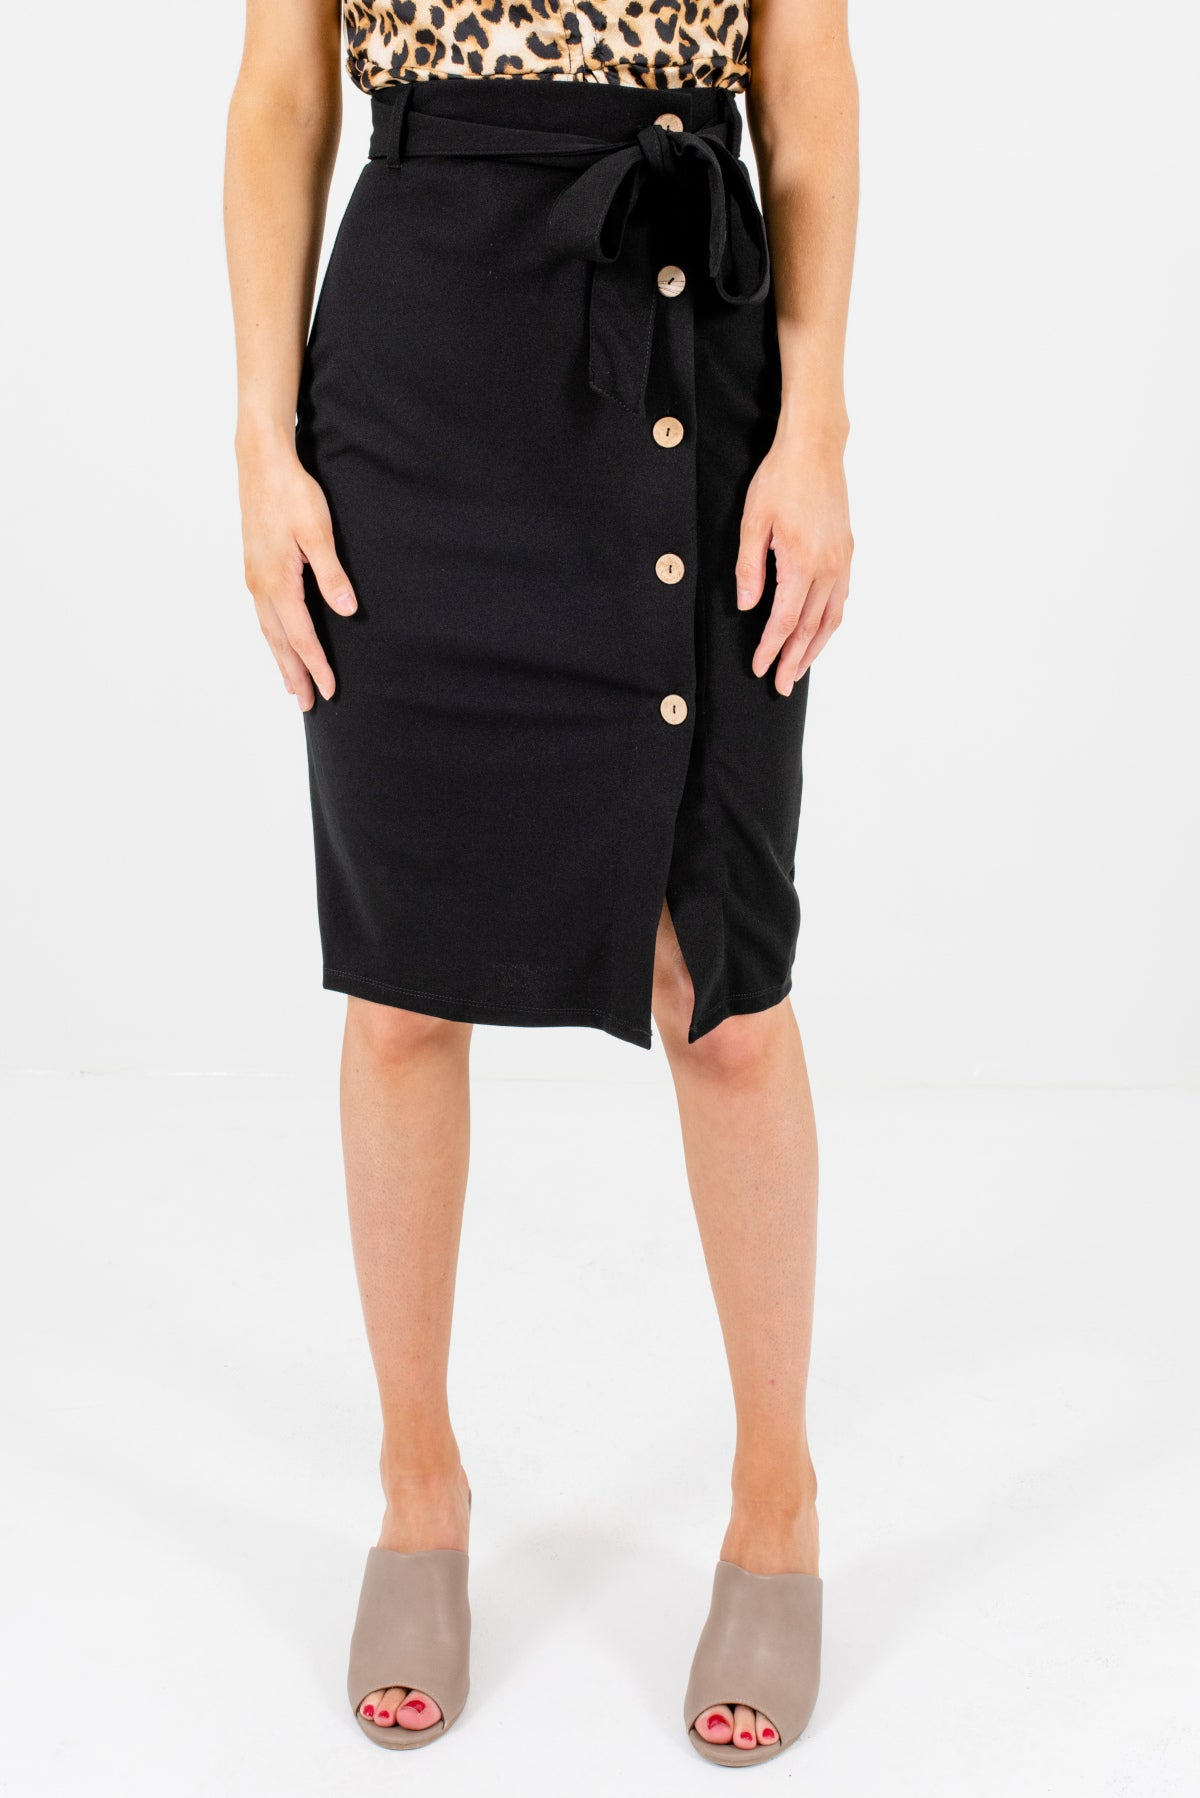 Black Button-Up Front Style Boutique Knee-Length Skirts for Women